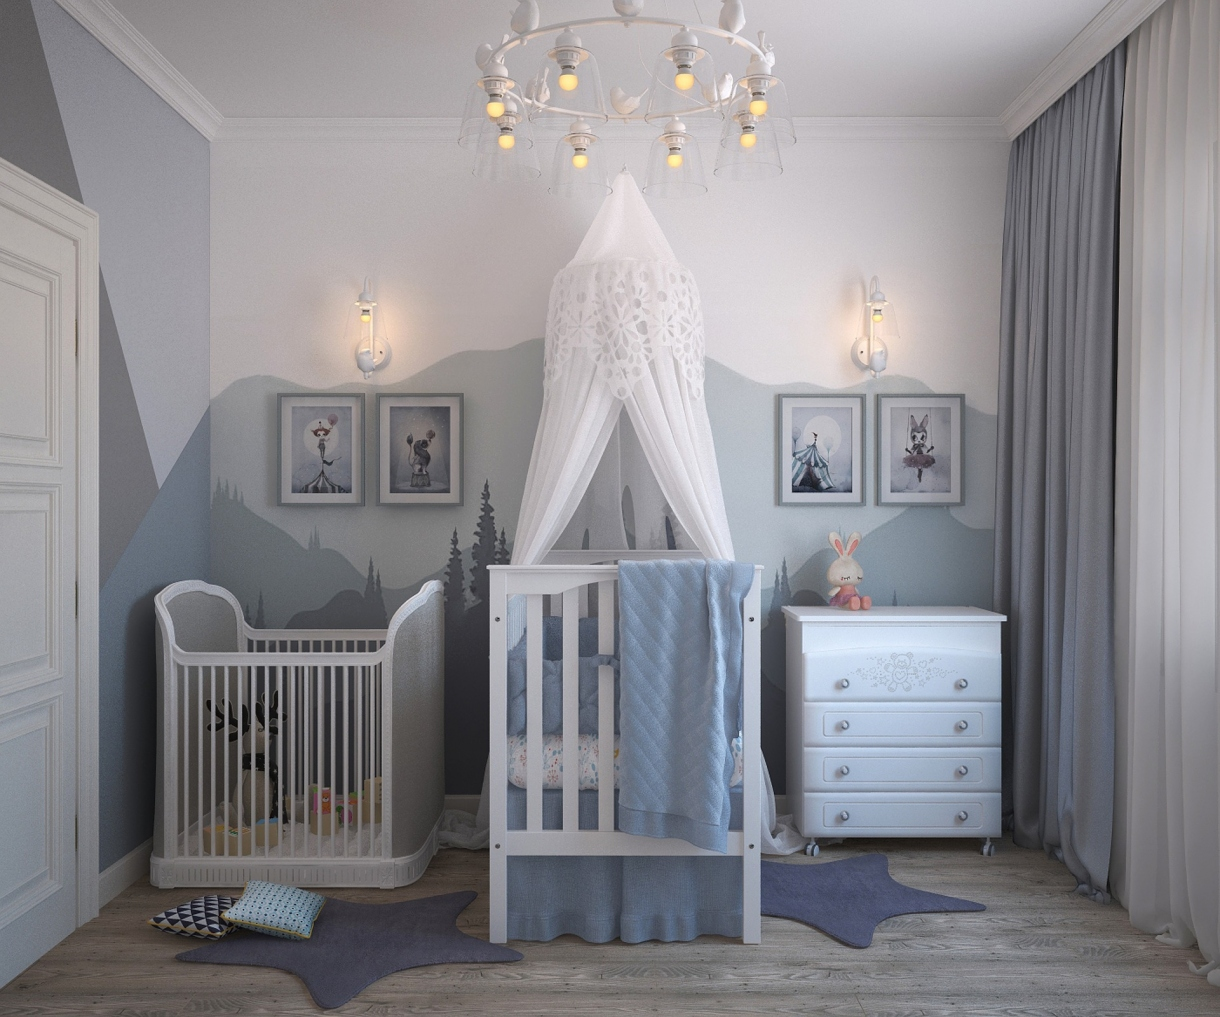 Parenting Pro Tips: Turning Your Kid's Room Into A Sleep Haven